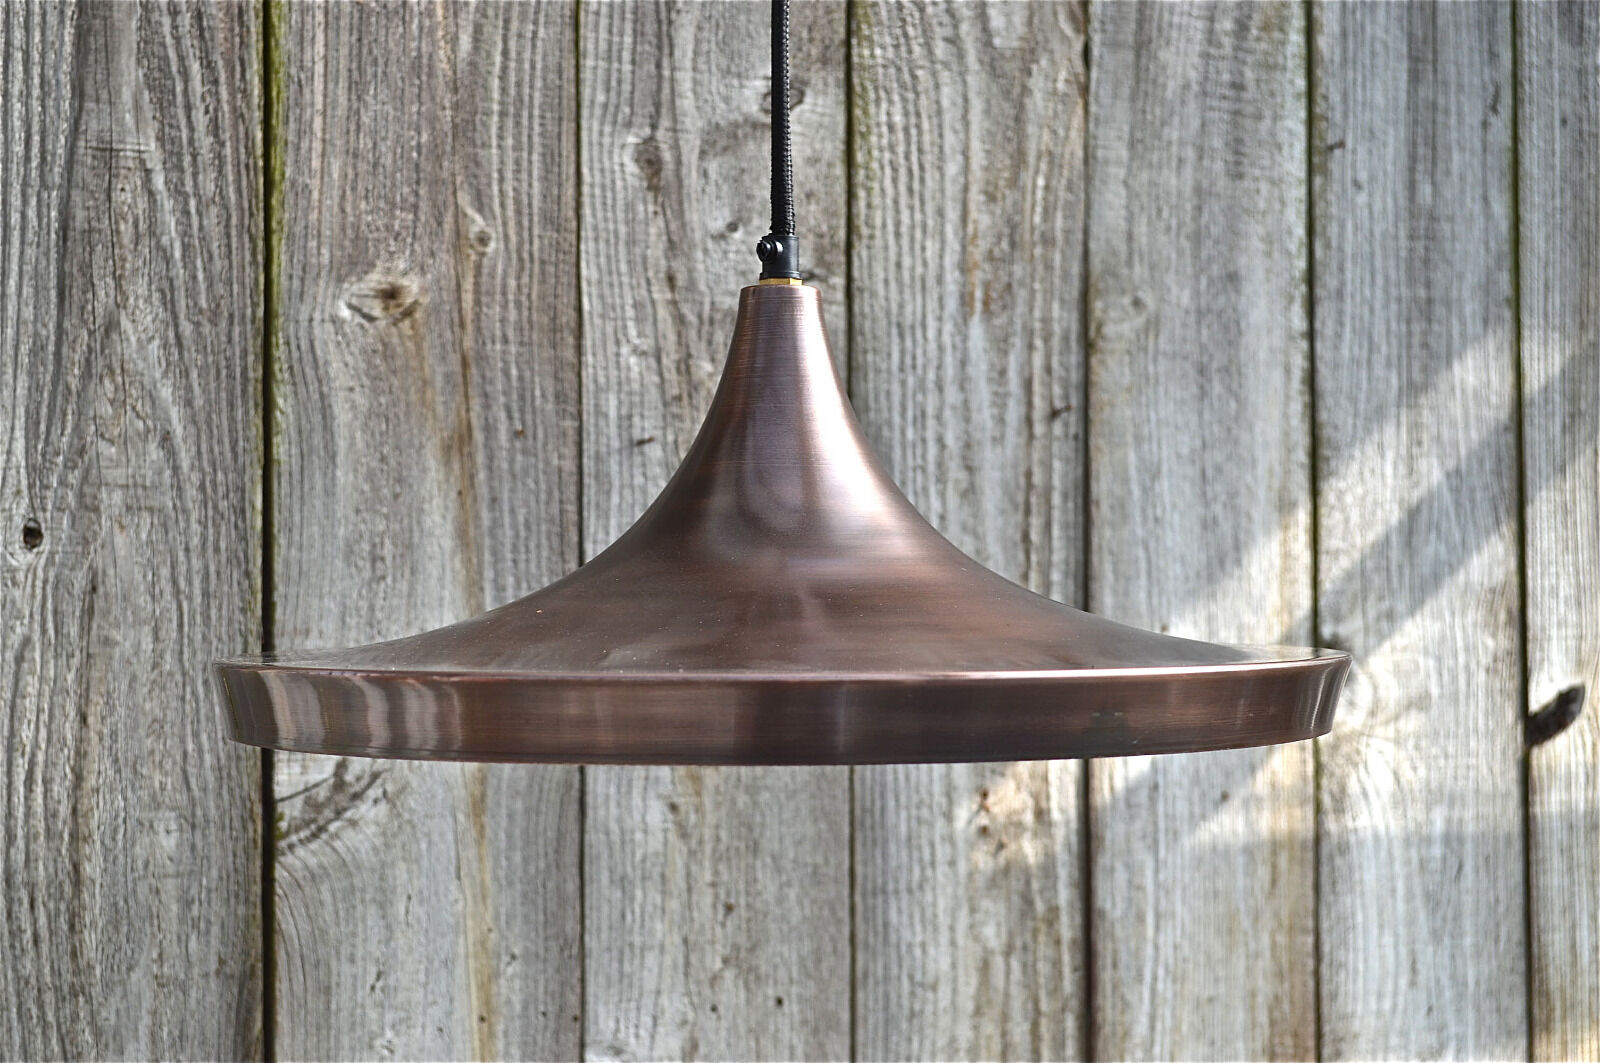 Large retro Danish design vintage copper hanging pendant light ceiling lamp LRD1